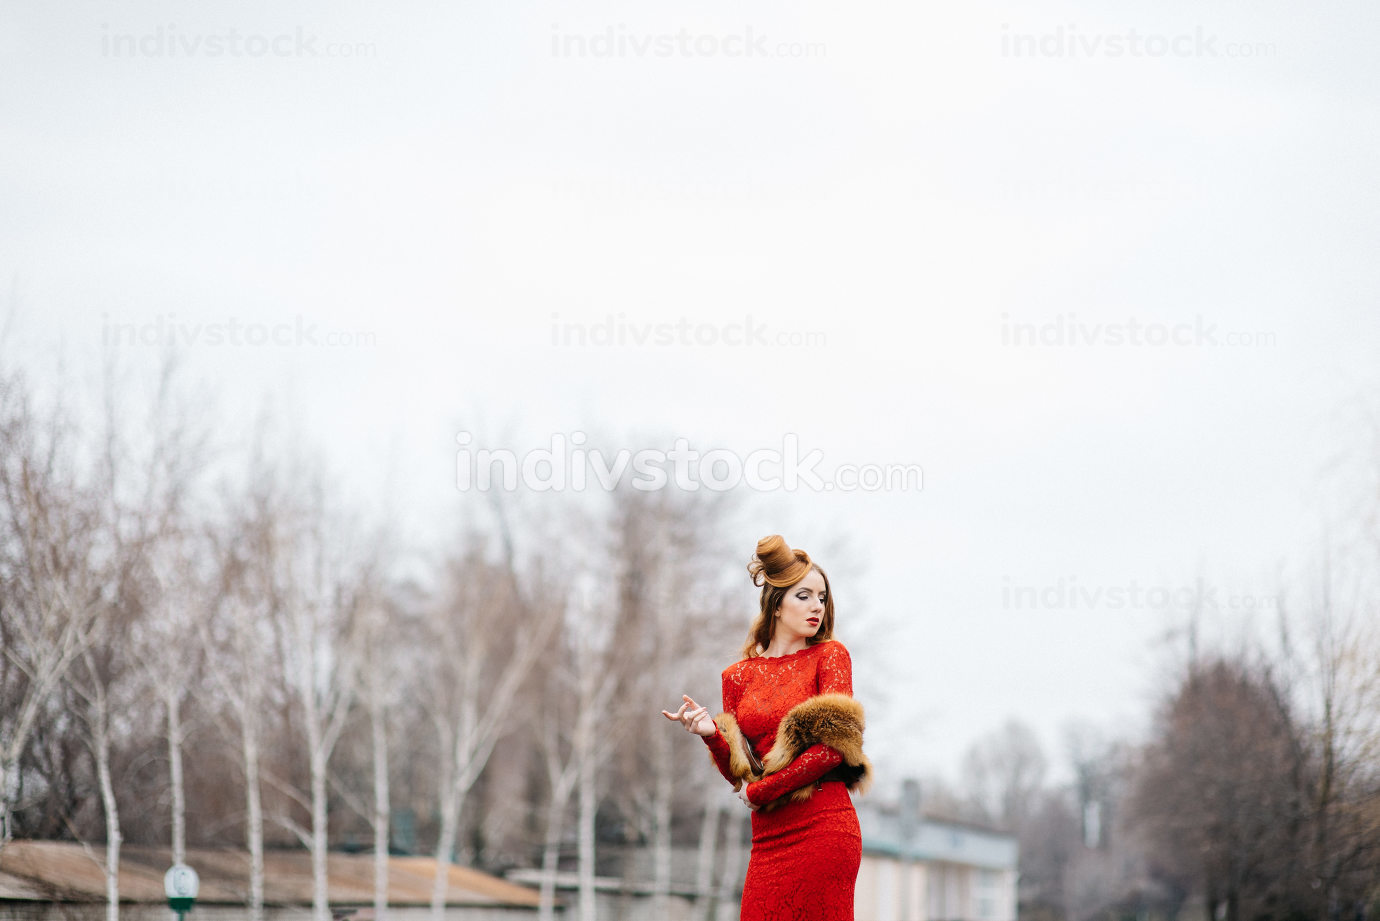 young girl with red hair in a bright red dress on the railway tr